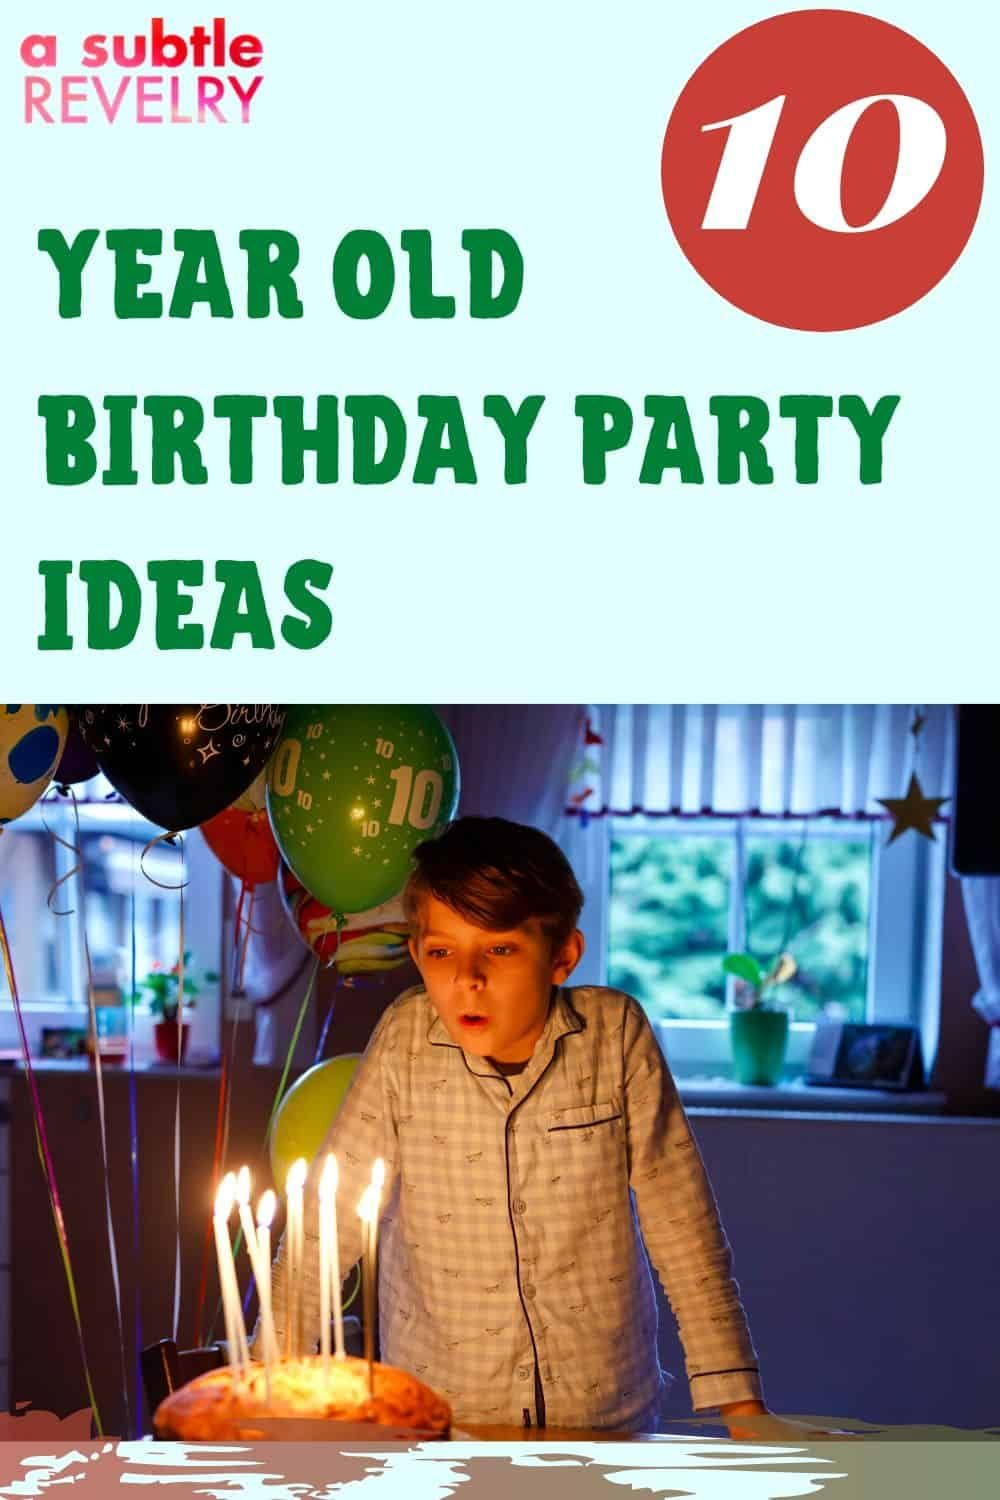 10 Year Old Birthday Party Ideas For Your Kids In 2020 Boy Birthday Party Themes Girls Party Themes Awesome Party Favors